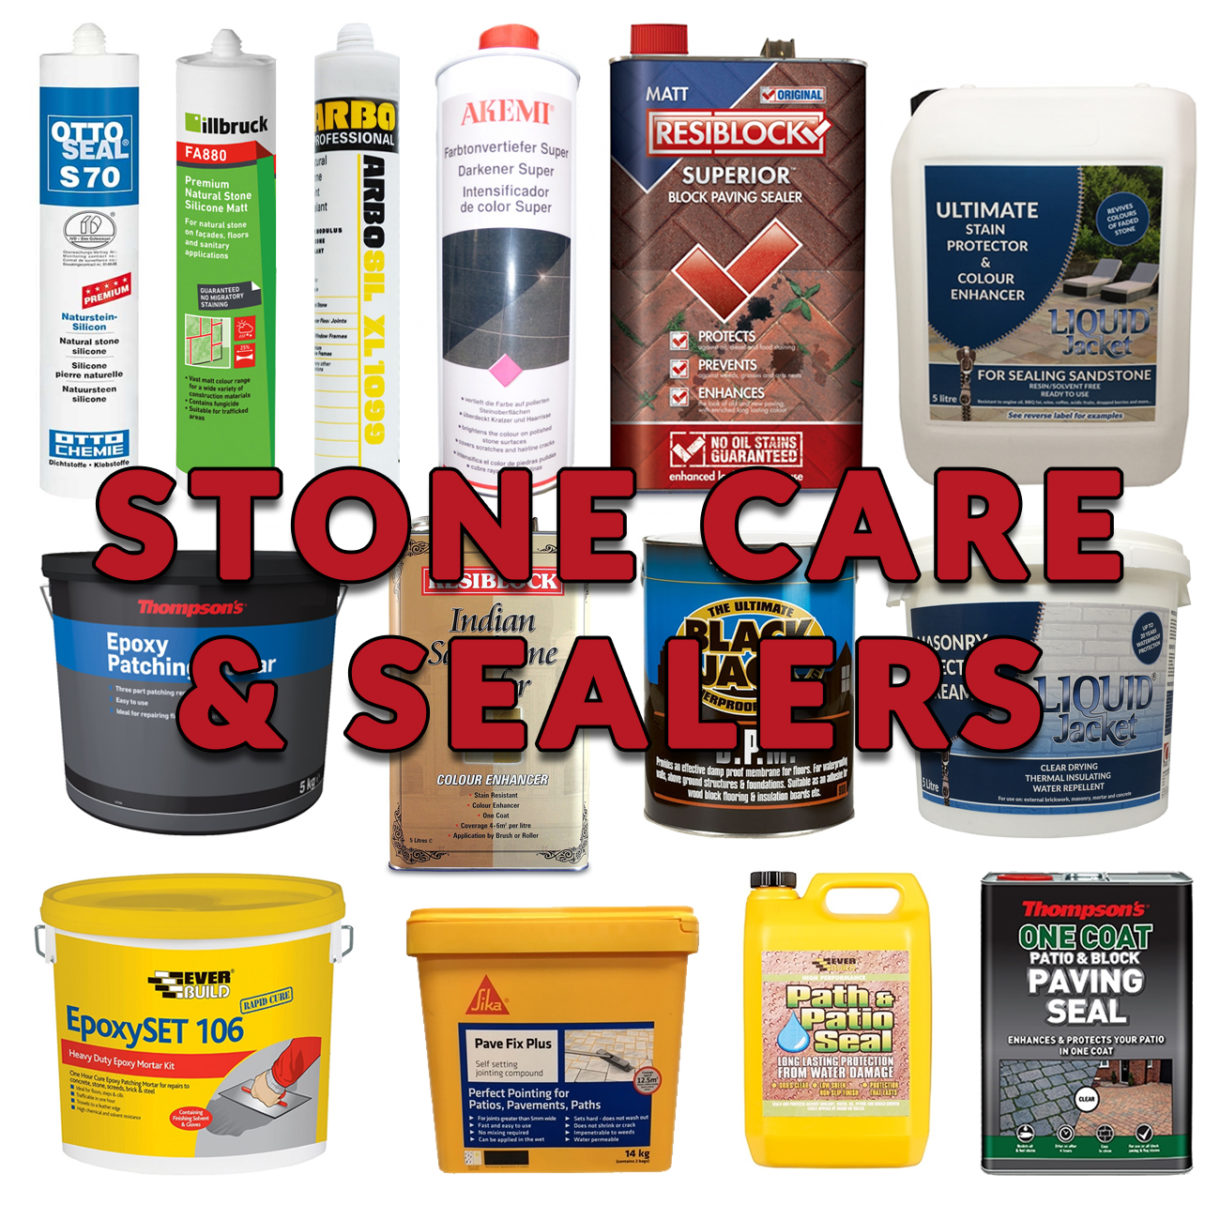 STONE CARE & SEALERS